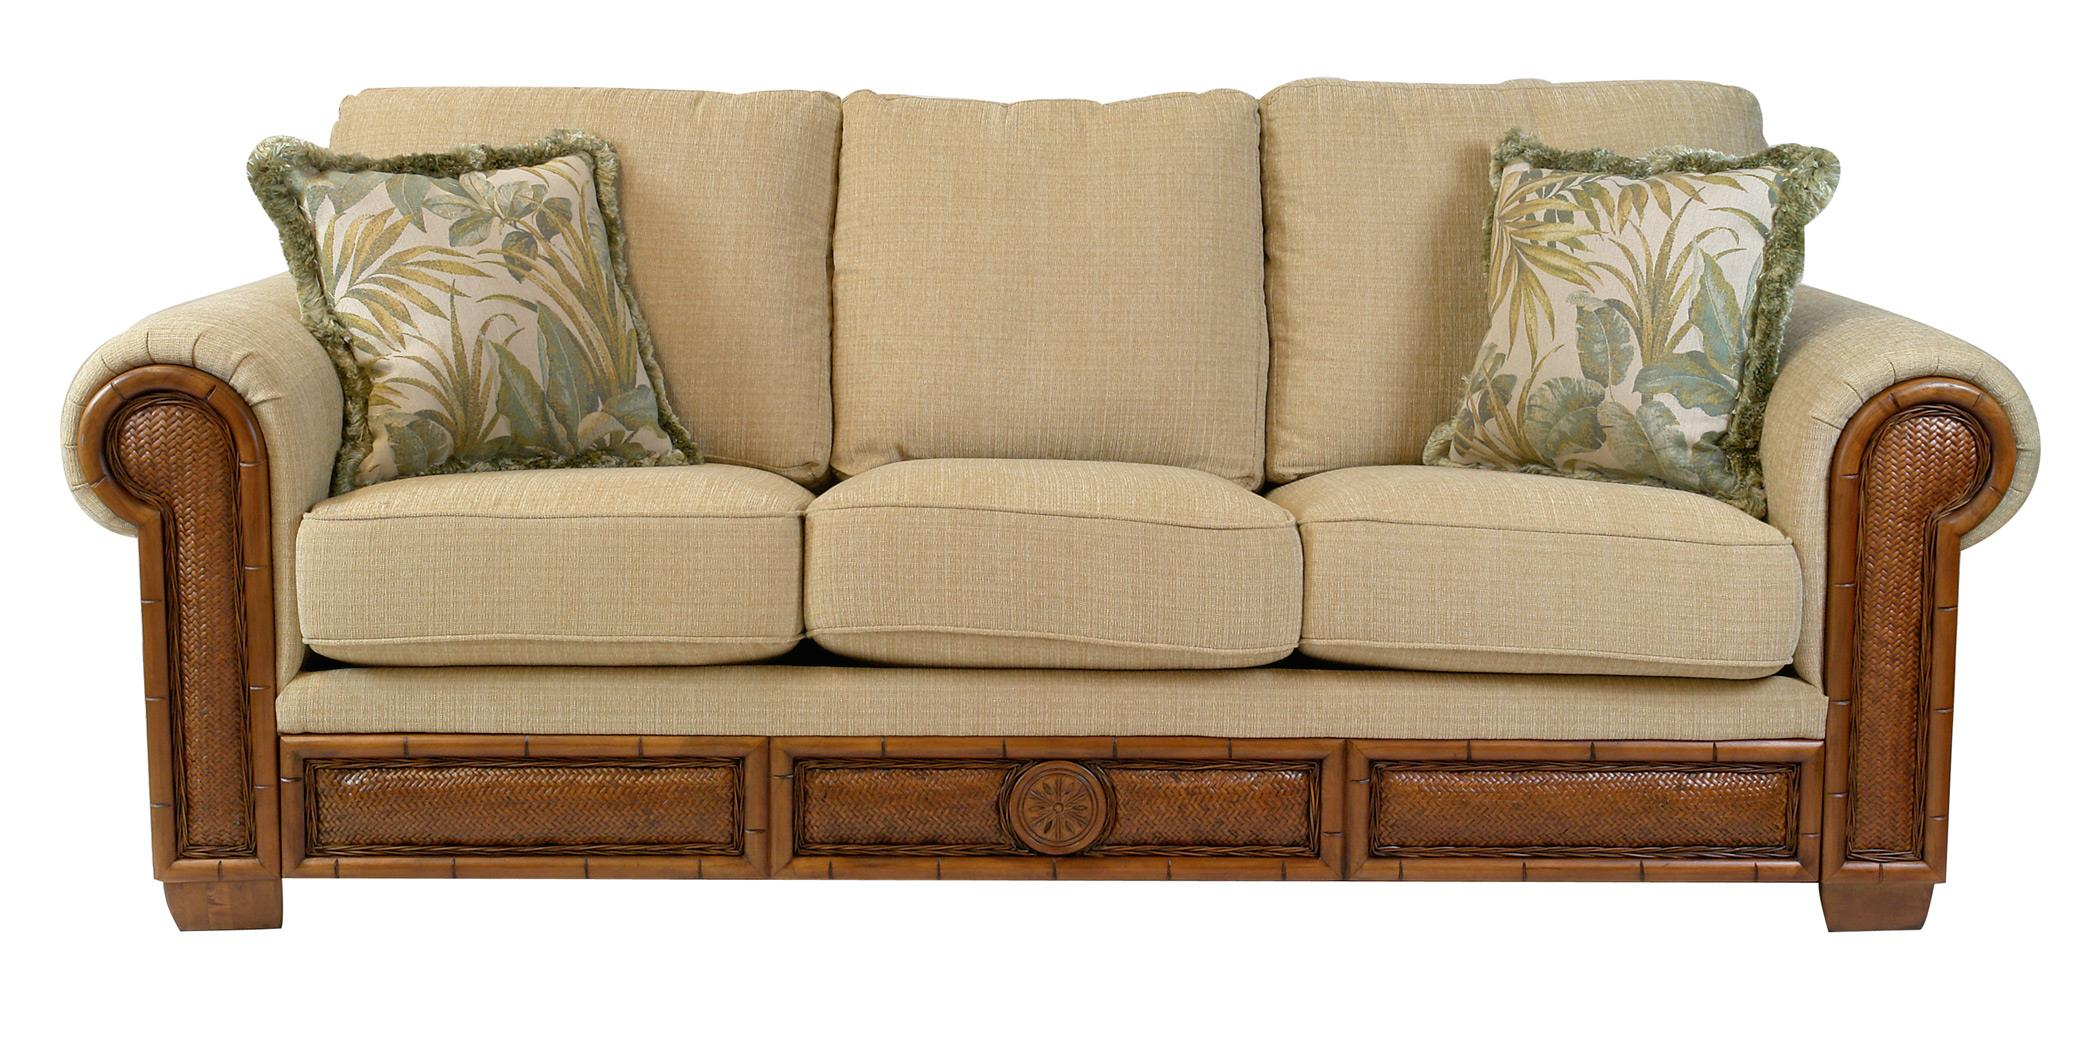 Synergy Home Furnishings Bailey Sofa   Item Number: 896 00 BAILEY